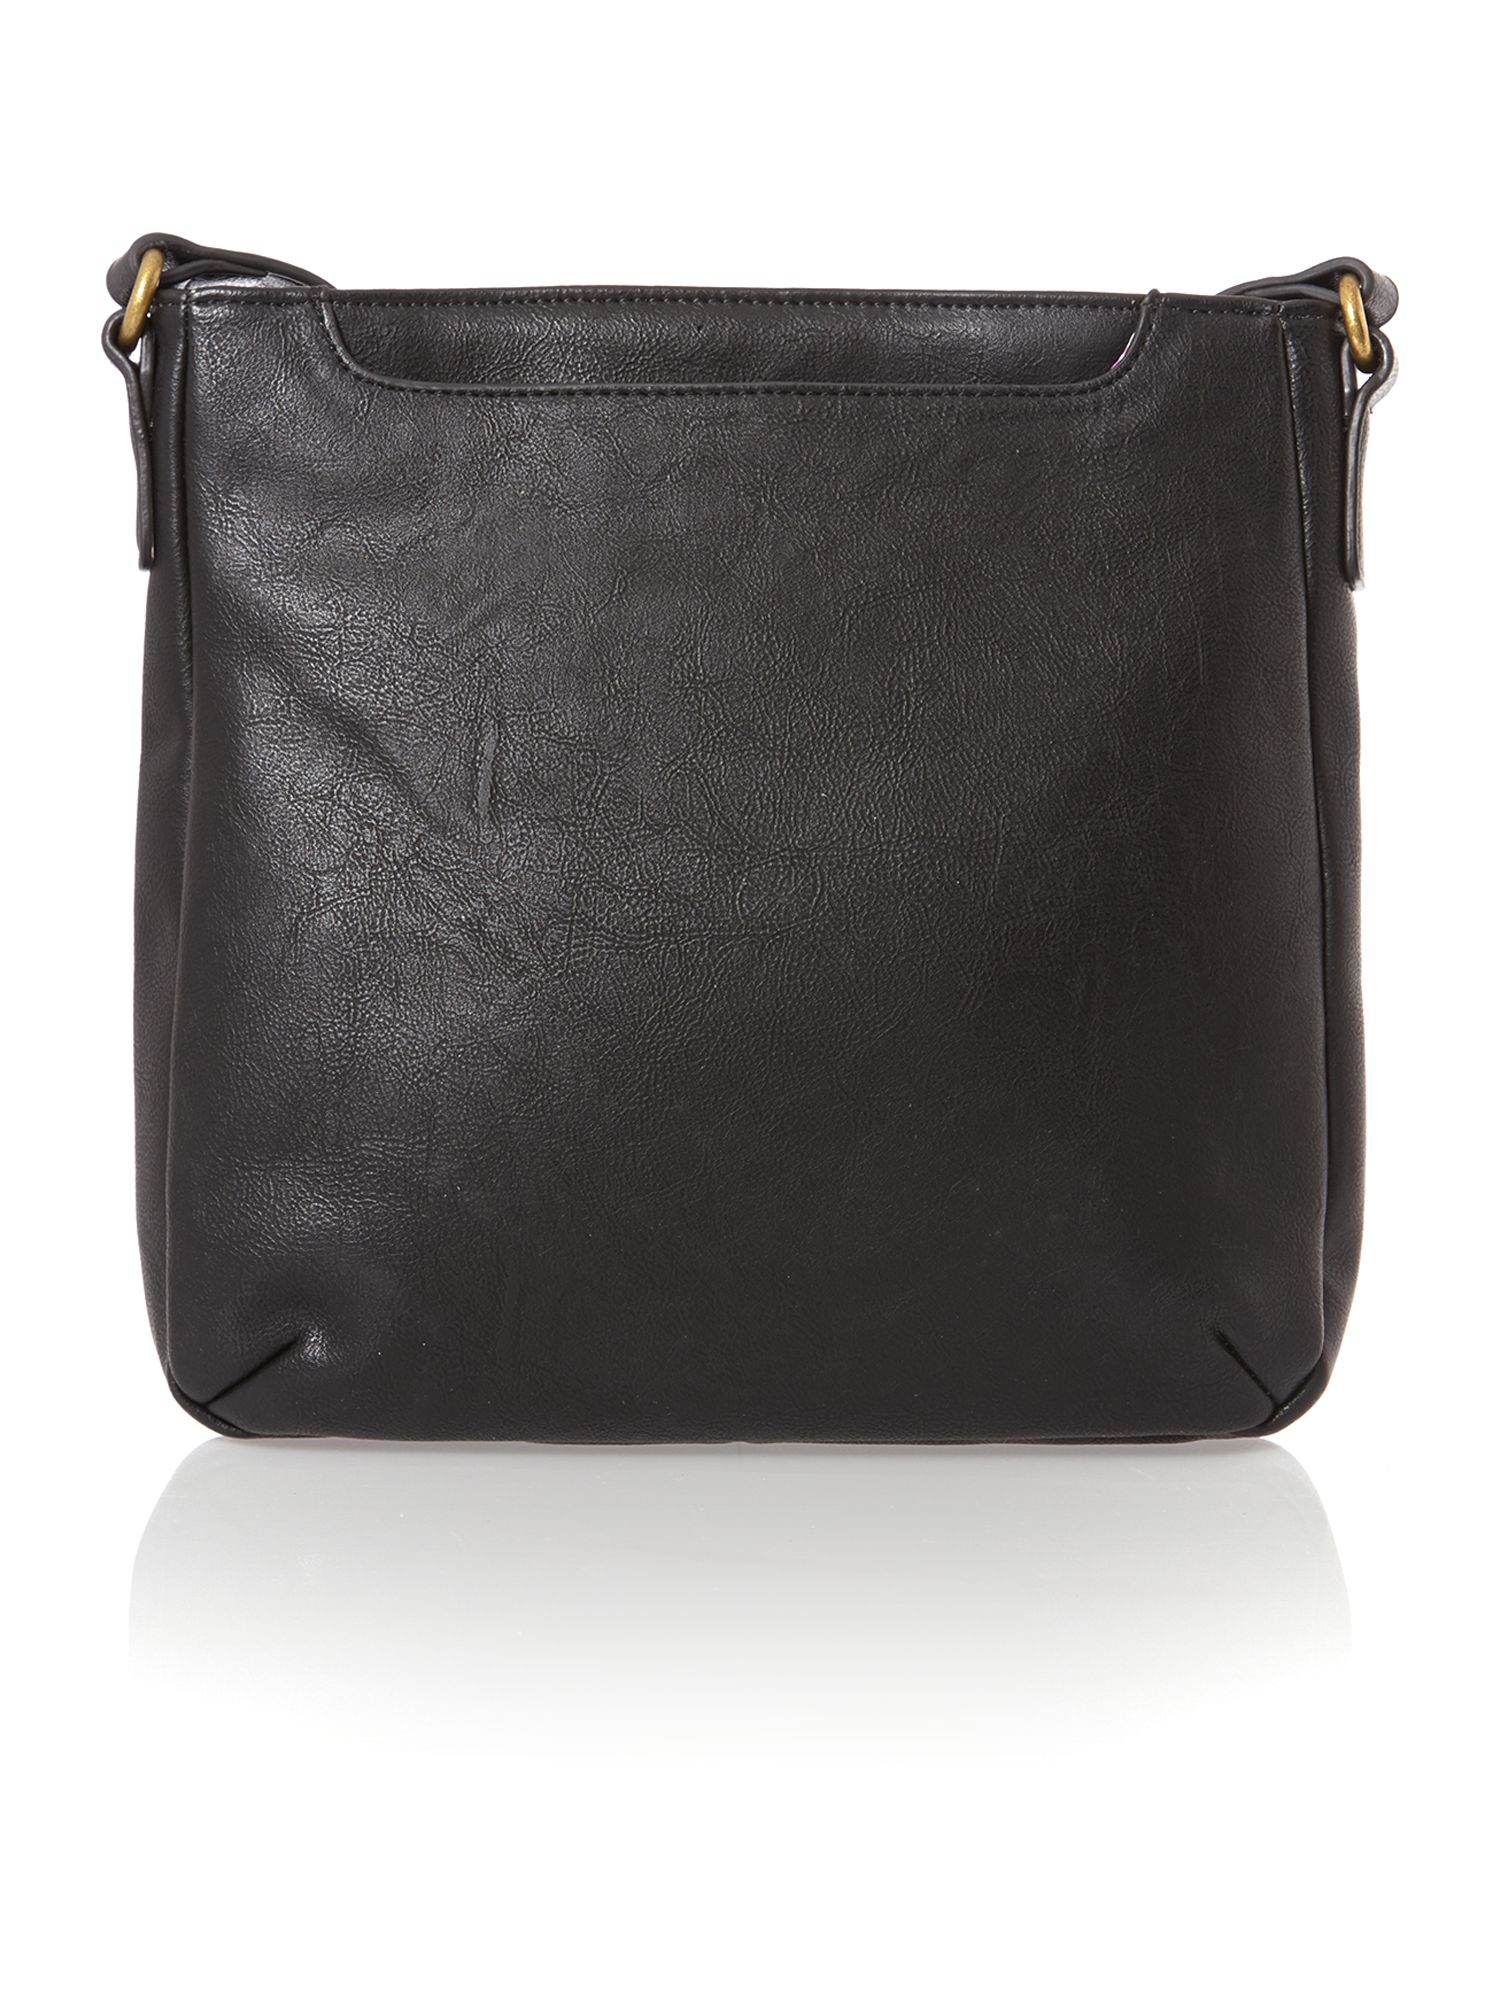 Judy black cross body bag